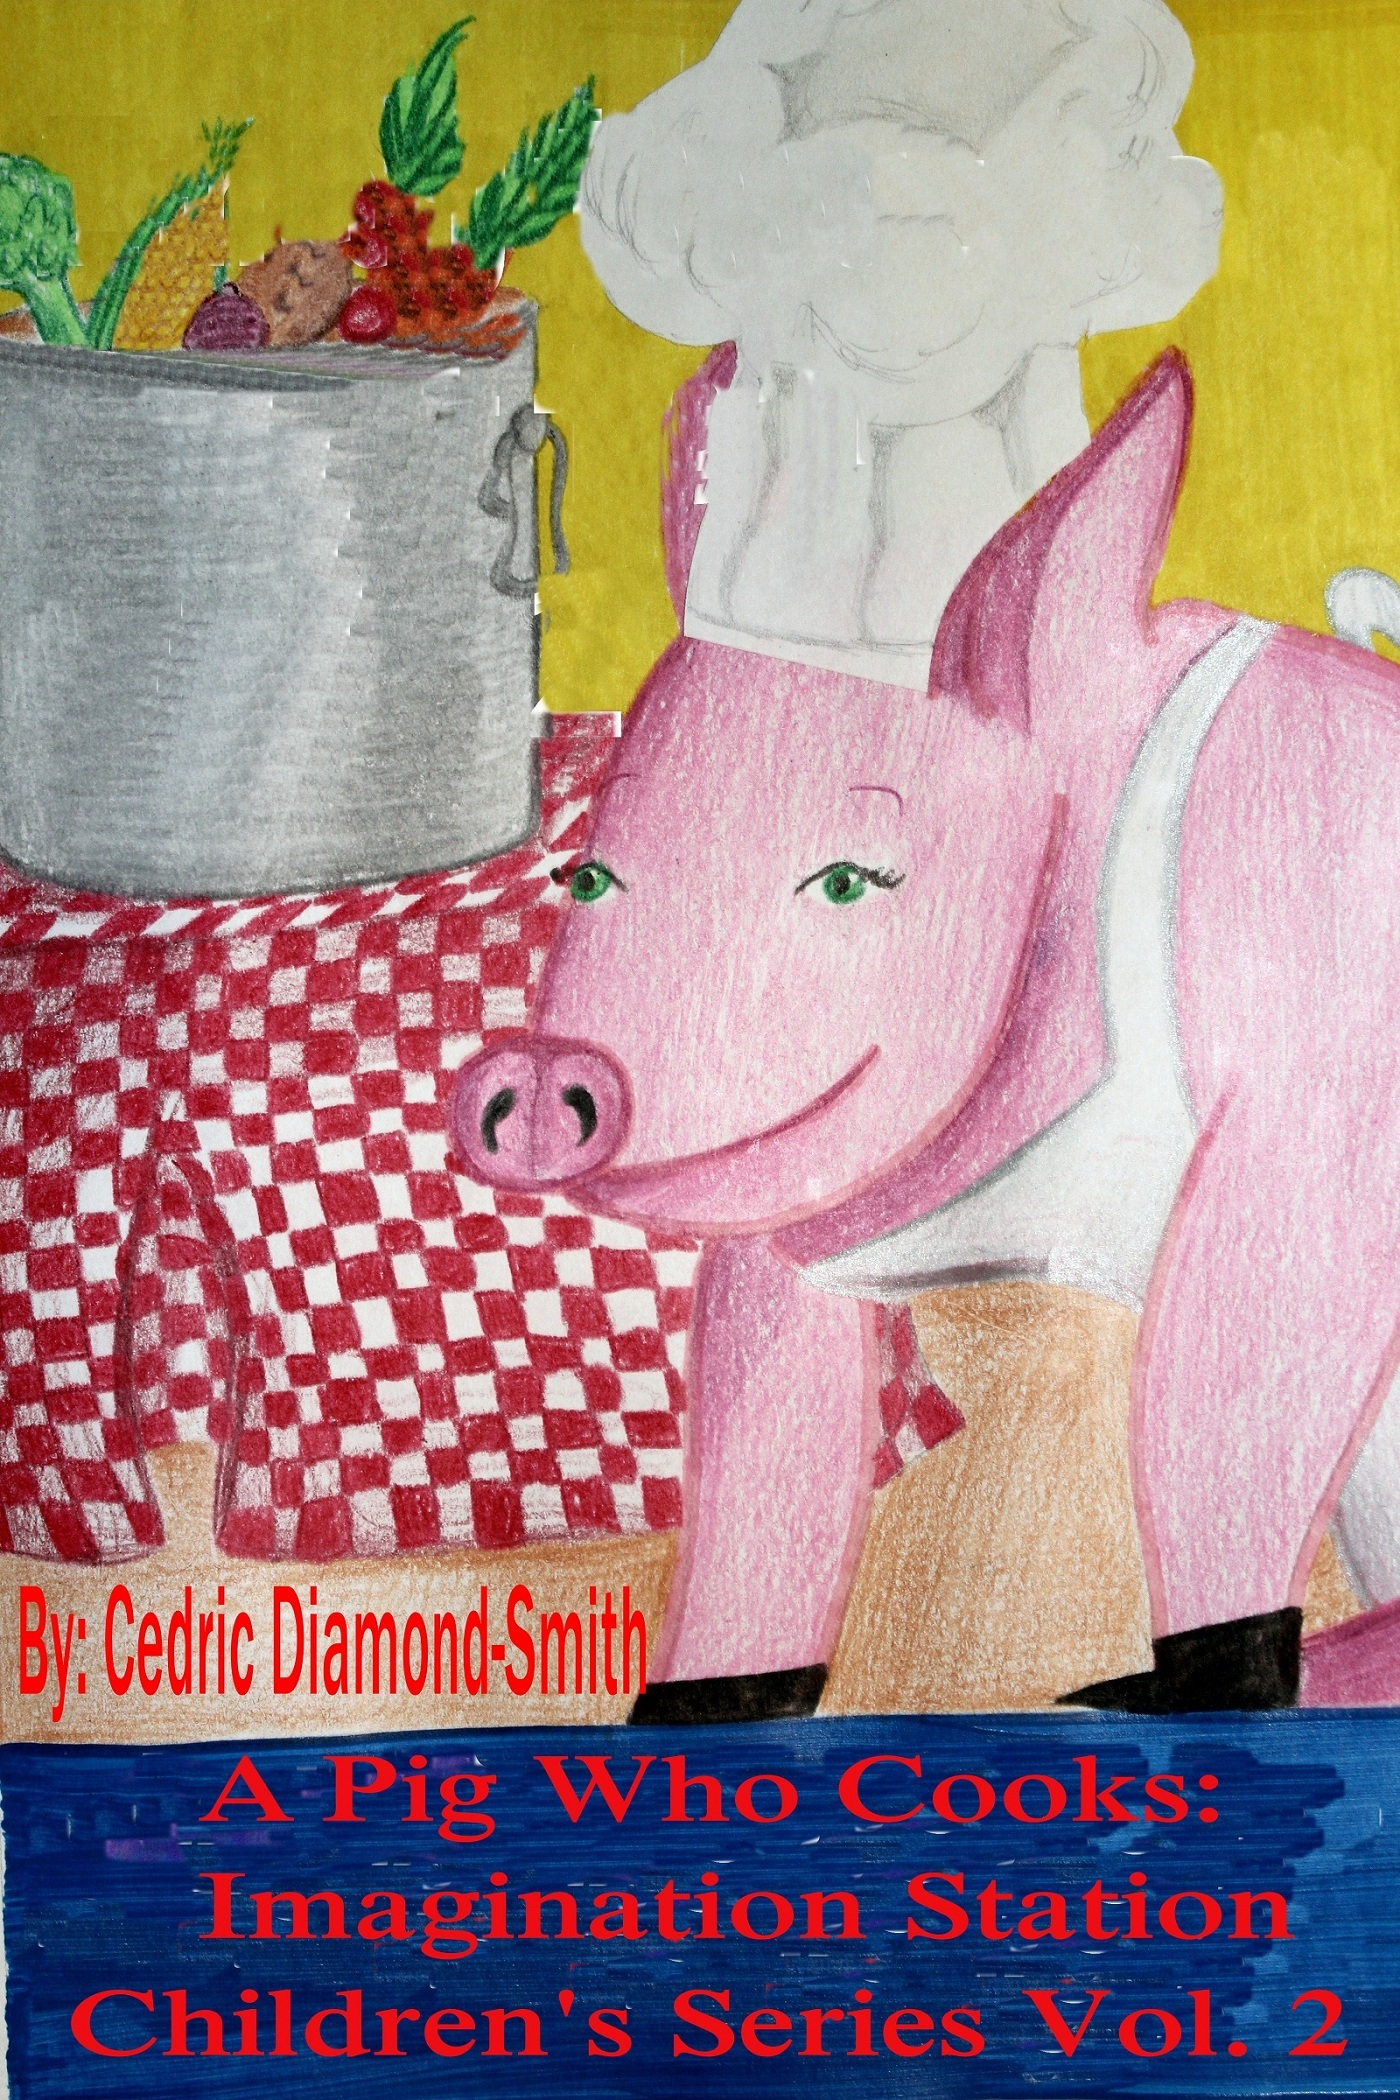 A Pig Who Cooks: Imagination Station Children's Series Vol. 2 By: Cedric Diamond-Smith